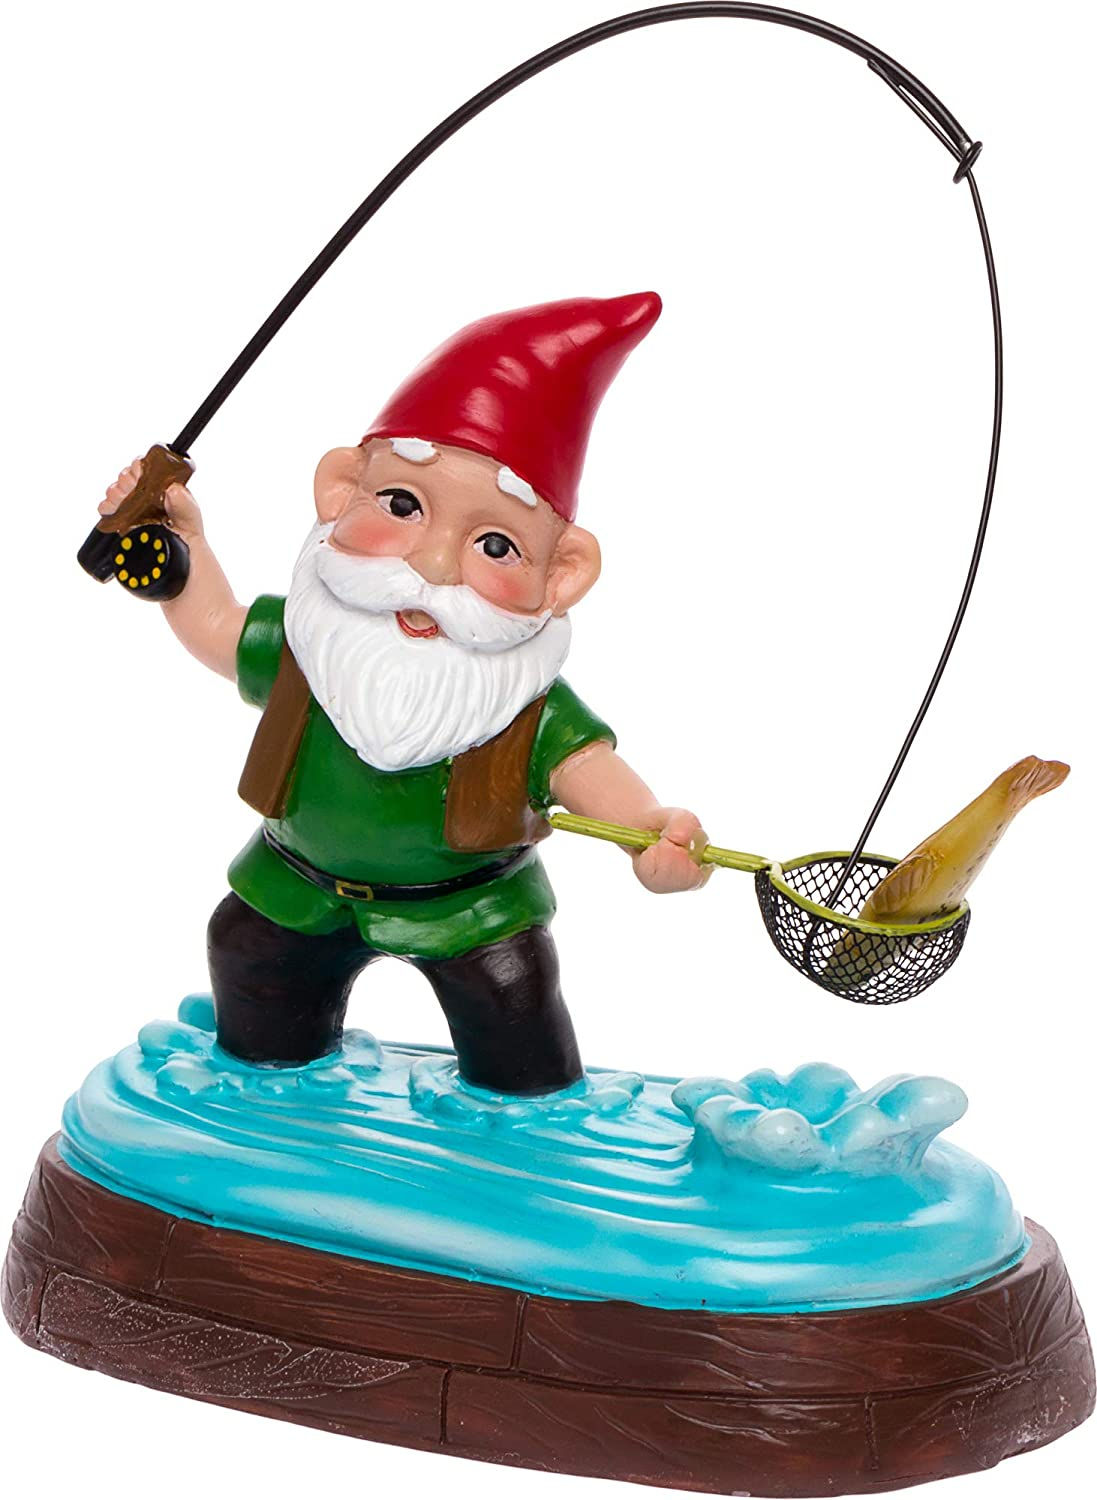 GreenLighting Fisherman Garden Gnome Outdoor Figurine - Hand Painted Funny Novelty Lawn Statue Decoration for Front Yards, Flowerbeds and Offices